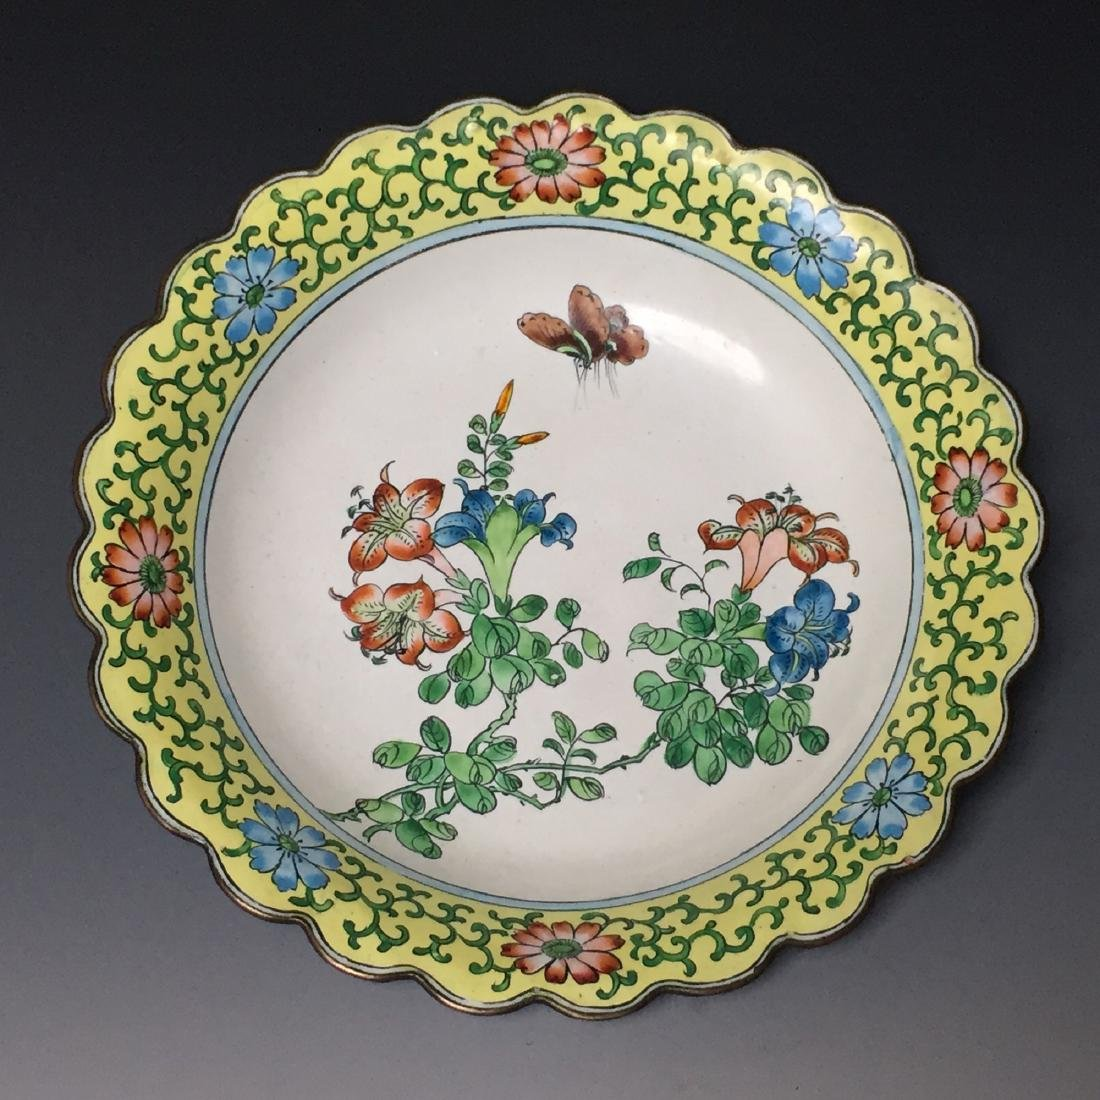 CHINESE ANTIQUE PAINTED ENAMEL PLATE,19C